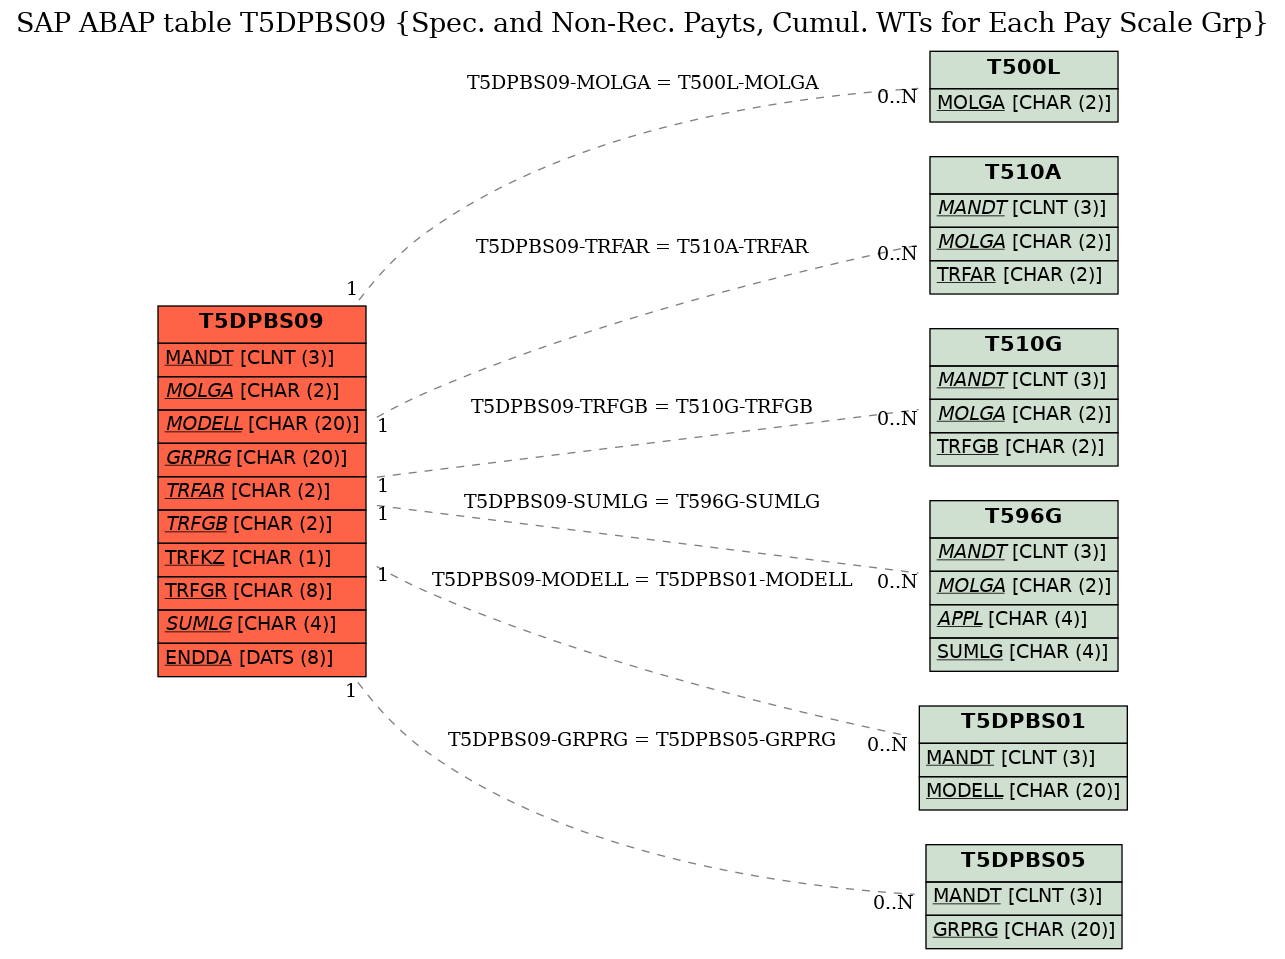 E-R Diagram for table T5DPBS09 (Spec. and Non-Rec. Payts, Cumul. WTs for Each Pay Scale Grp)